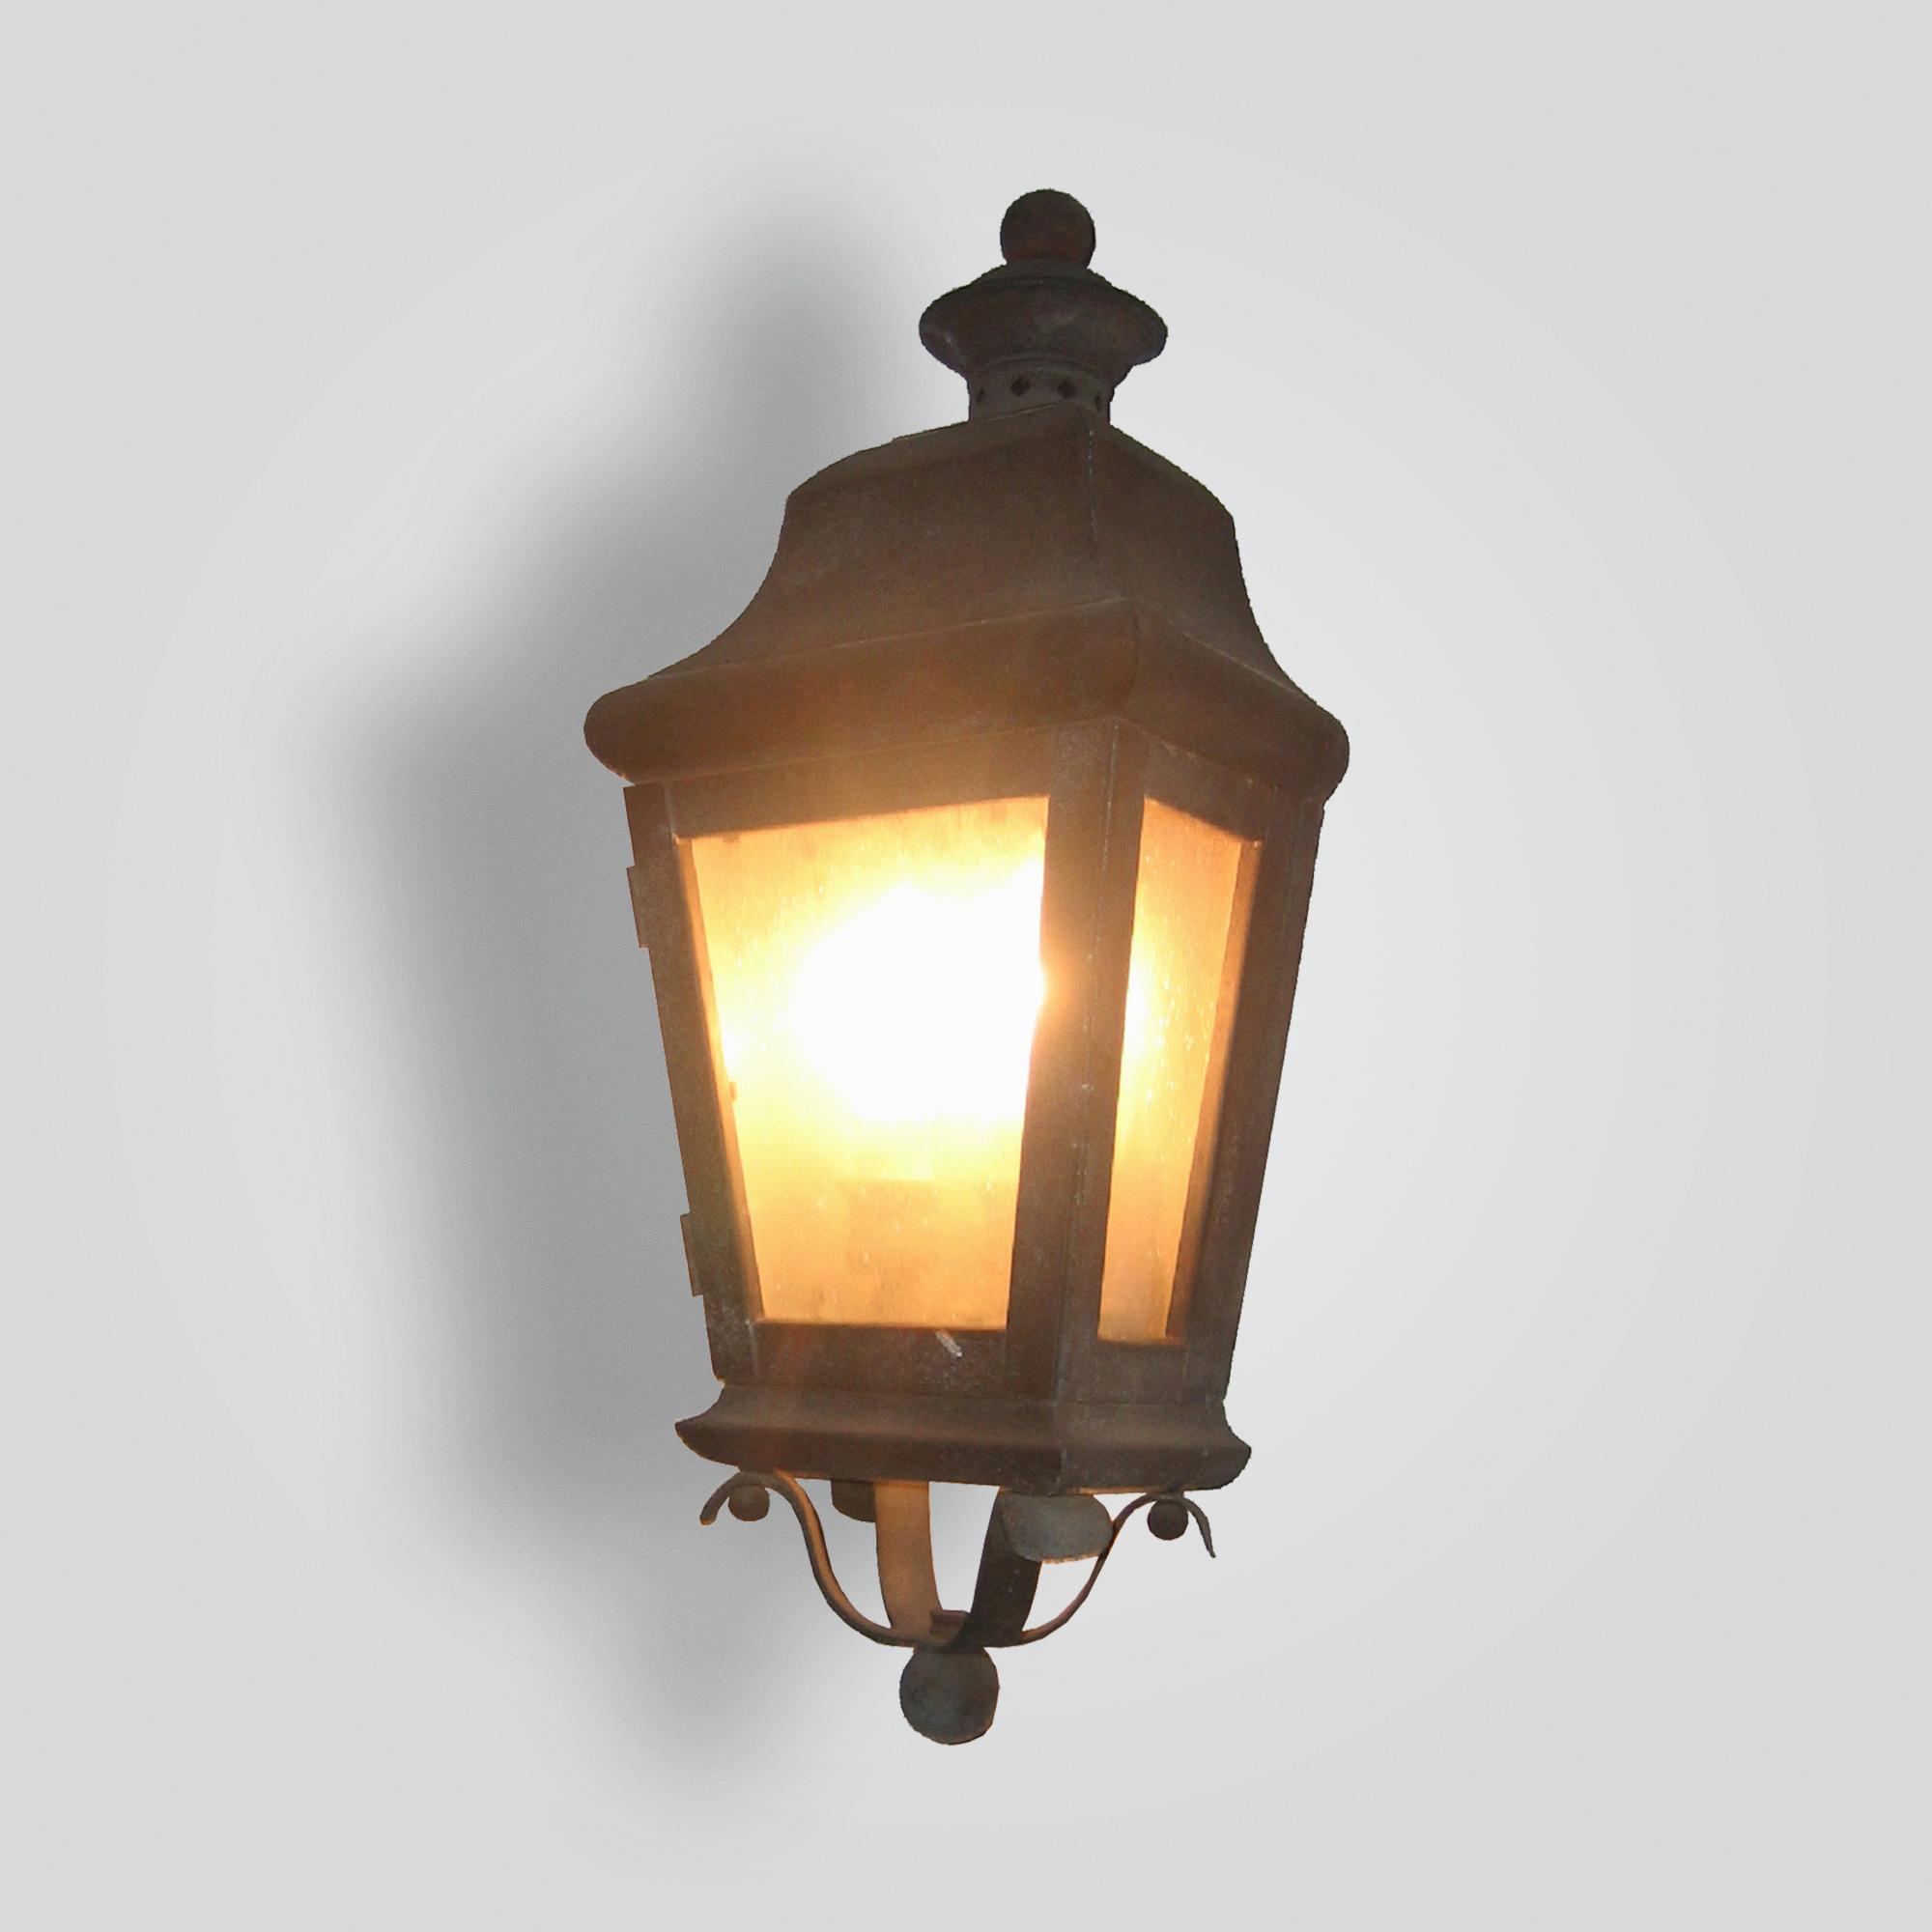 100-cb2-br-w-sh Traditional Lantern – ADG Lighting Collection